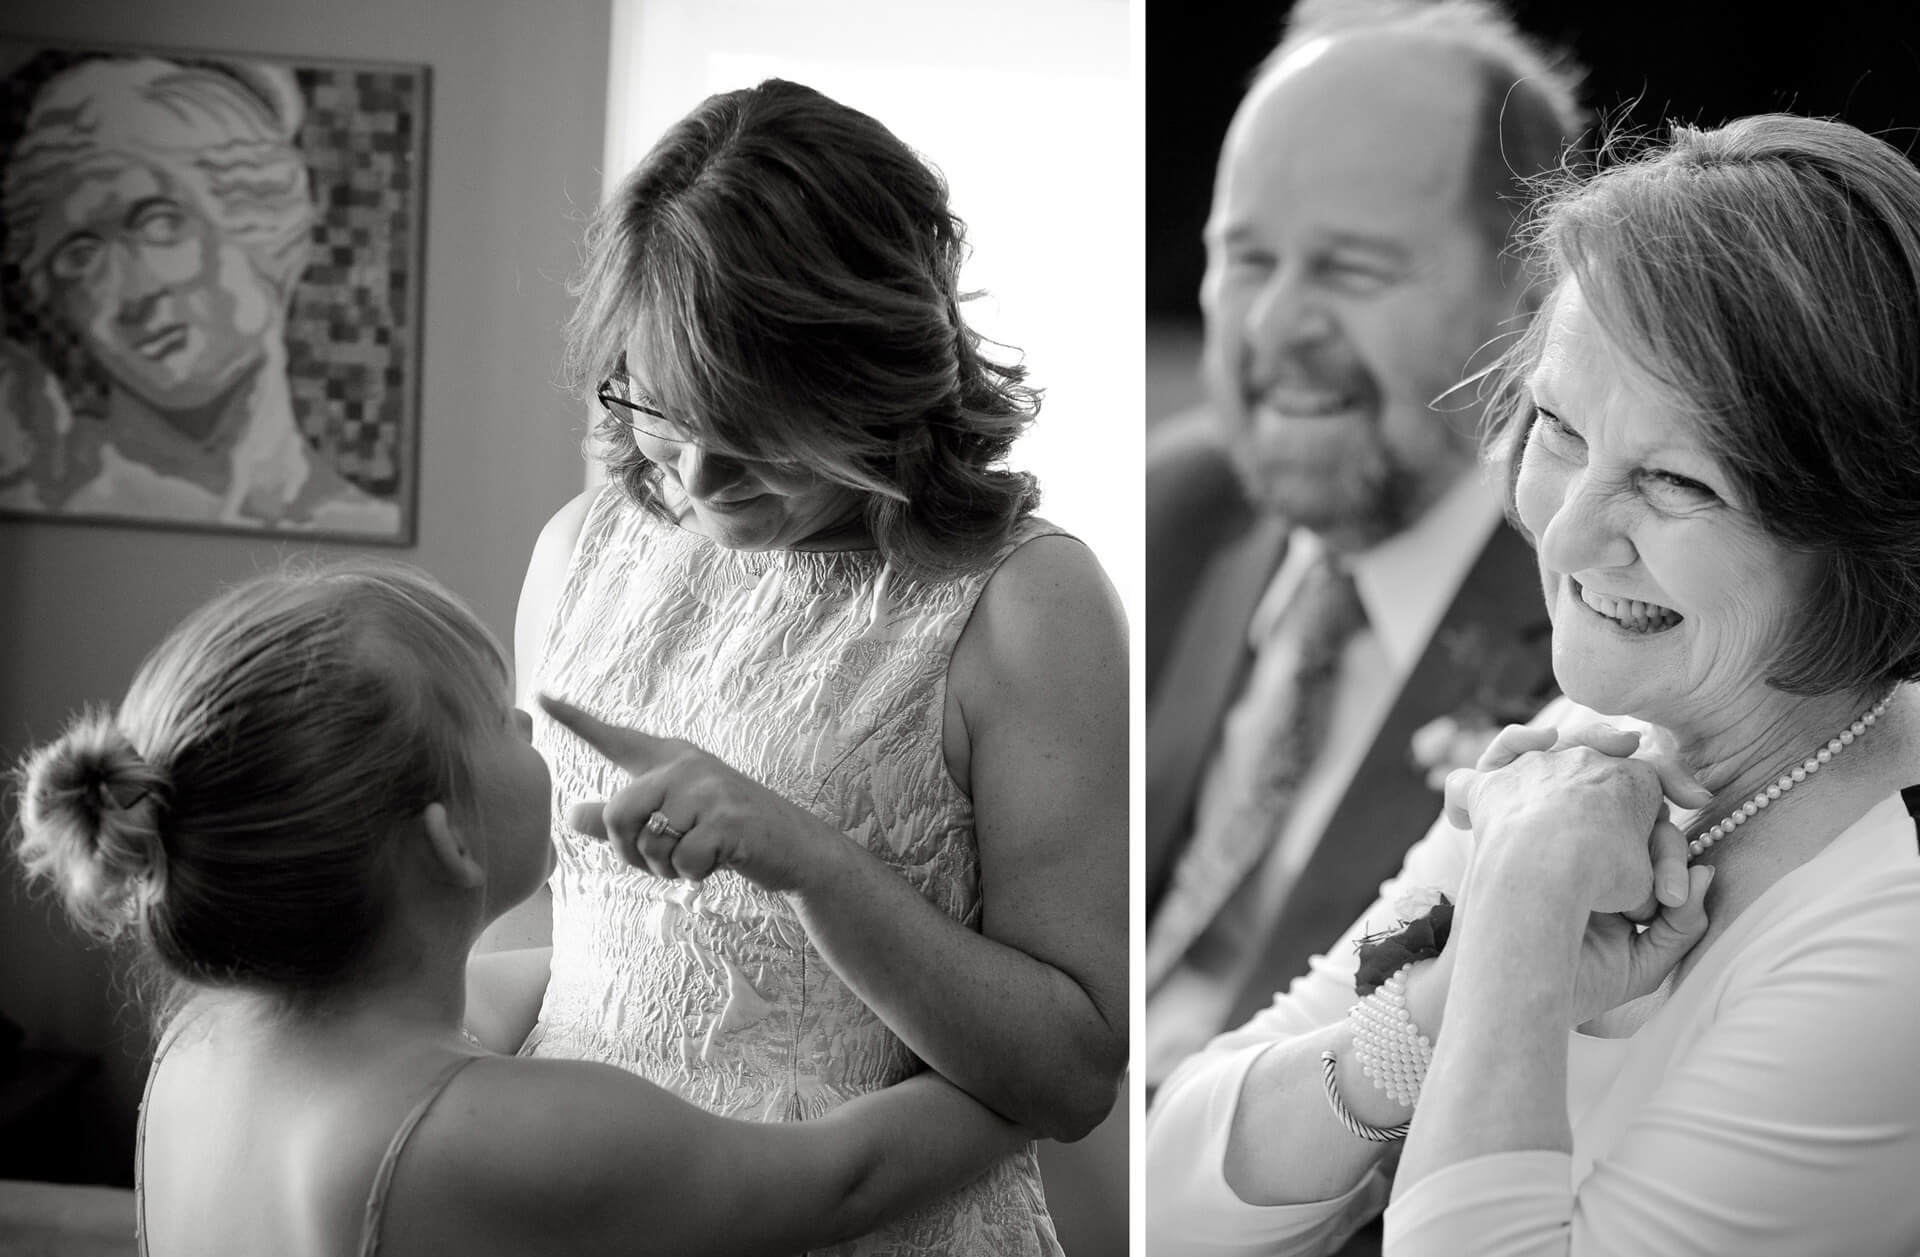 Capturing fleeting moments during weddings is my forte as an affordable wedding photojournalist. These Ann Arbor, Michigan and West Bloomfield, Michigan weddings are just two examples of many.